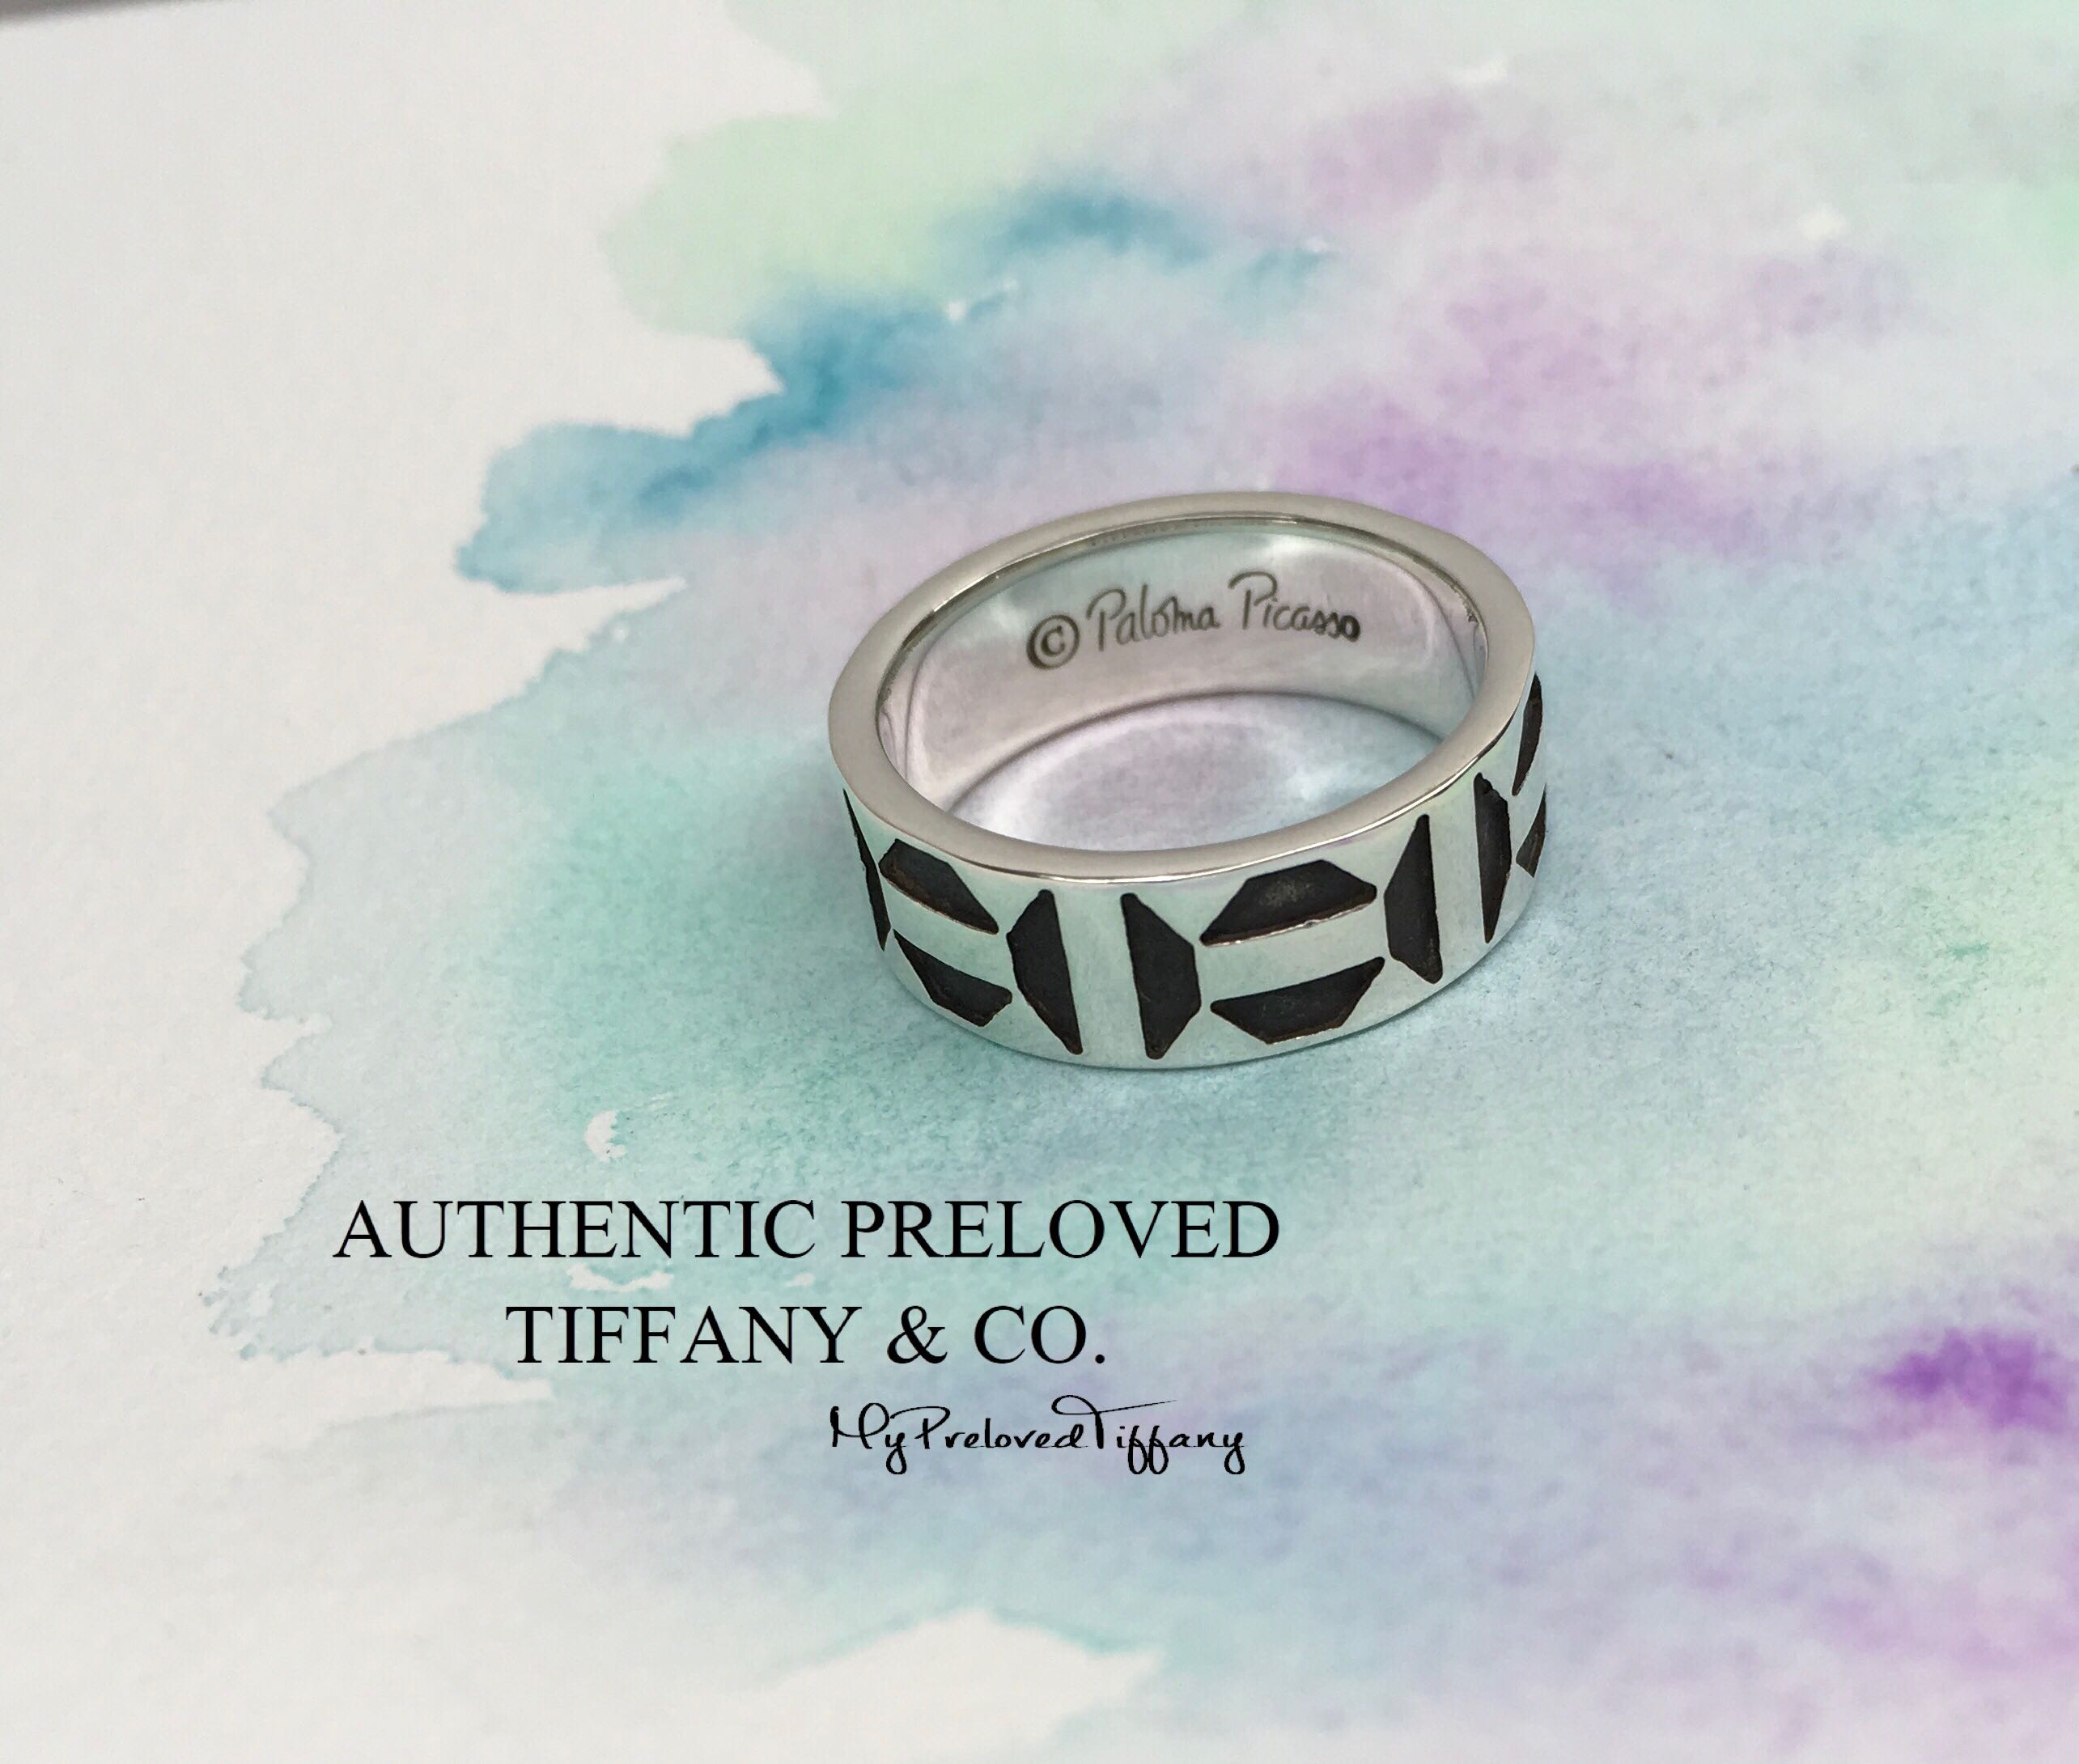 7f25bddf4 Excellent Authentic Tiffany & Co Paloma Picasso Oxidized Zellige Silver  Ring #6.75, Women's Fashion, Jewellery, Rings on Carousell